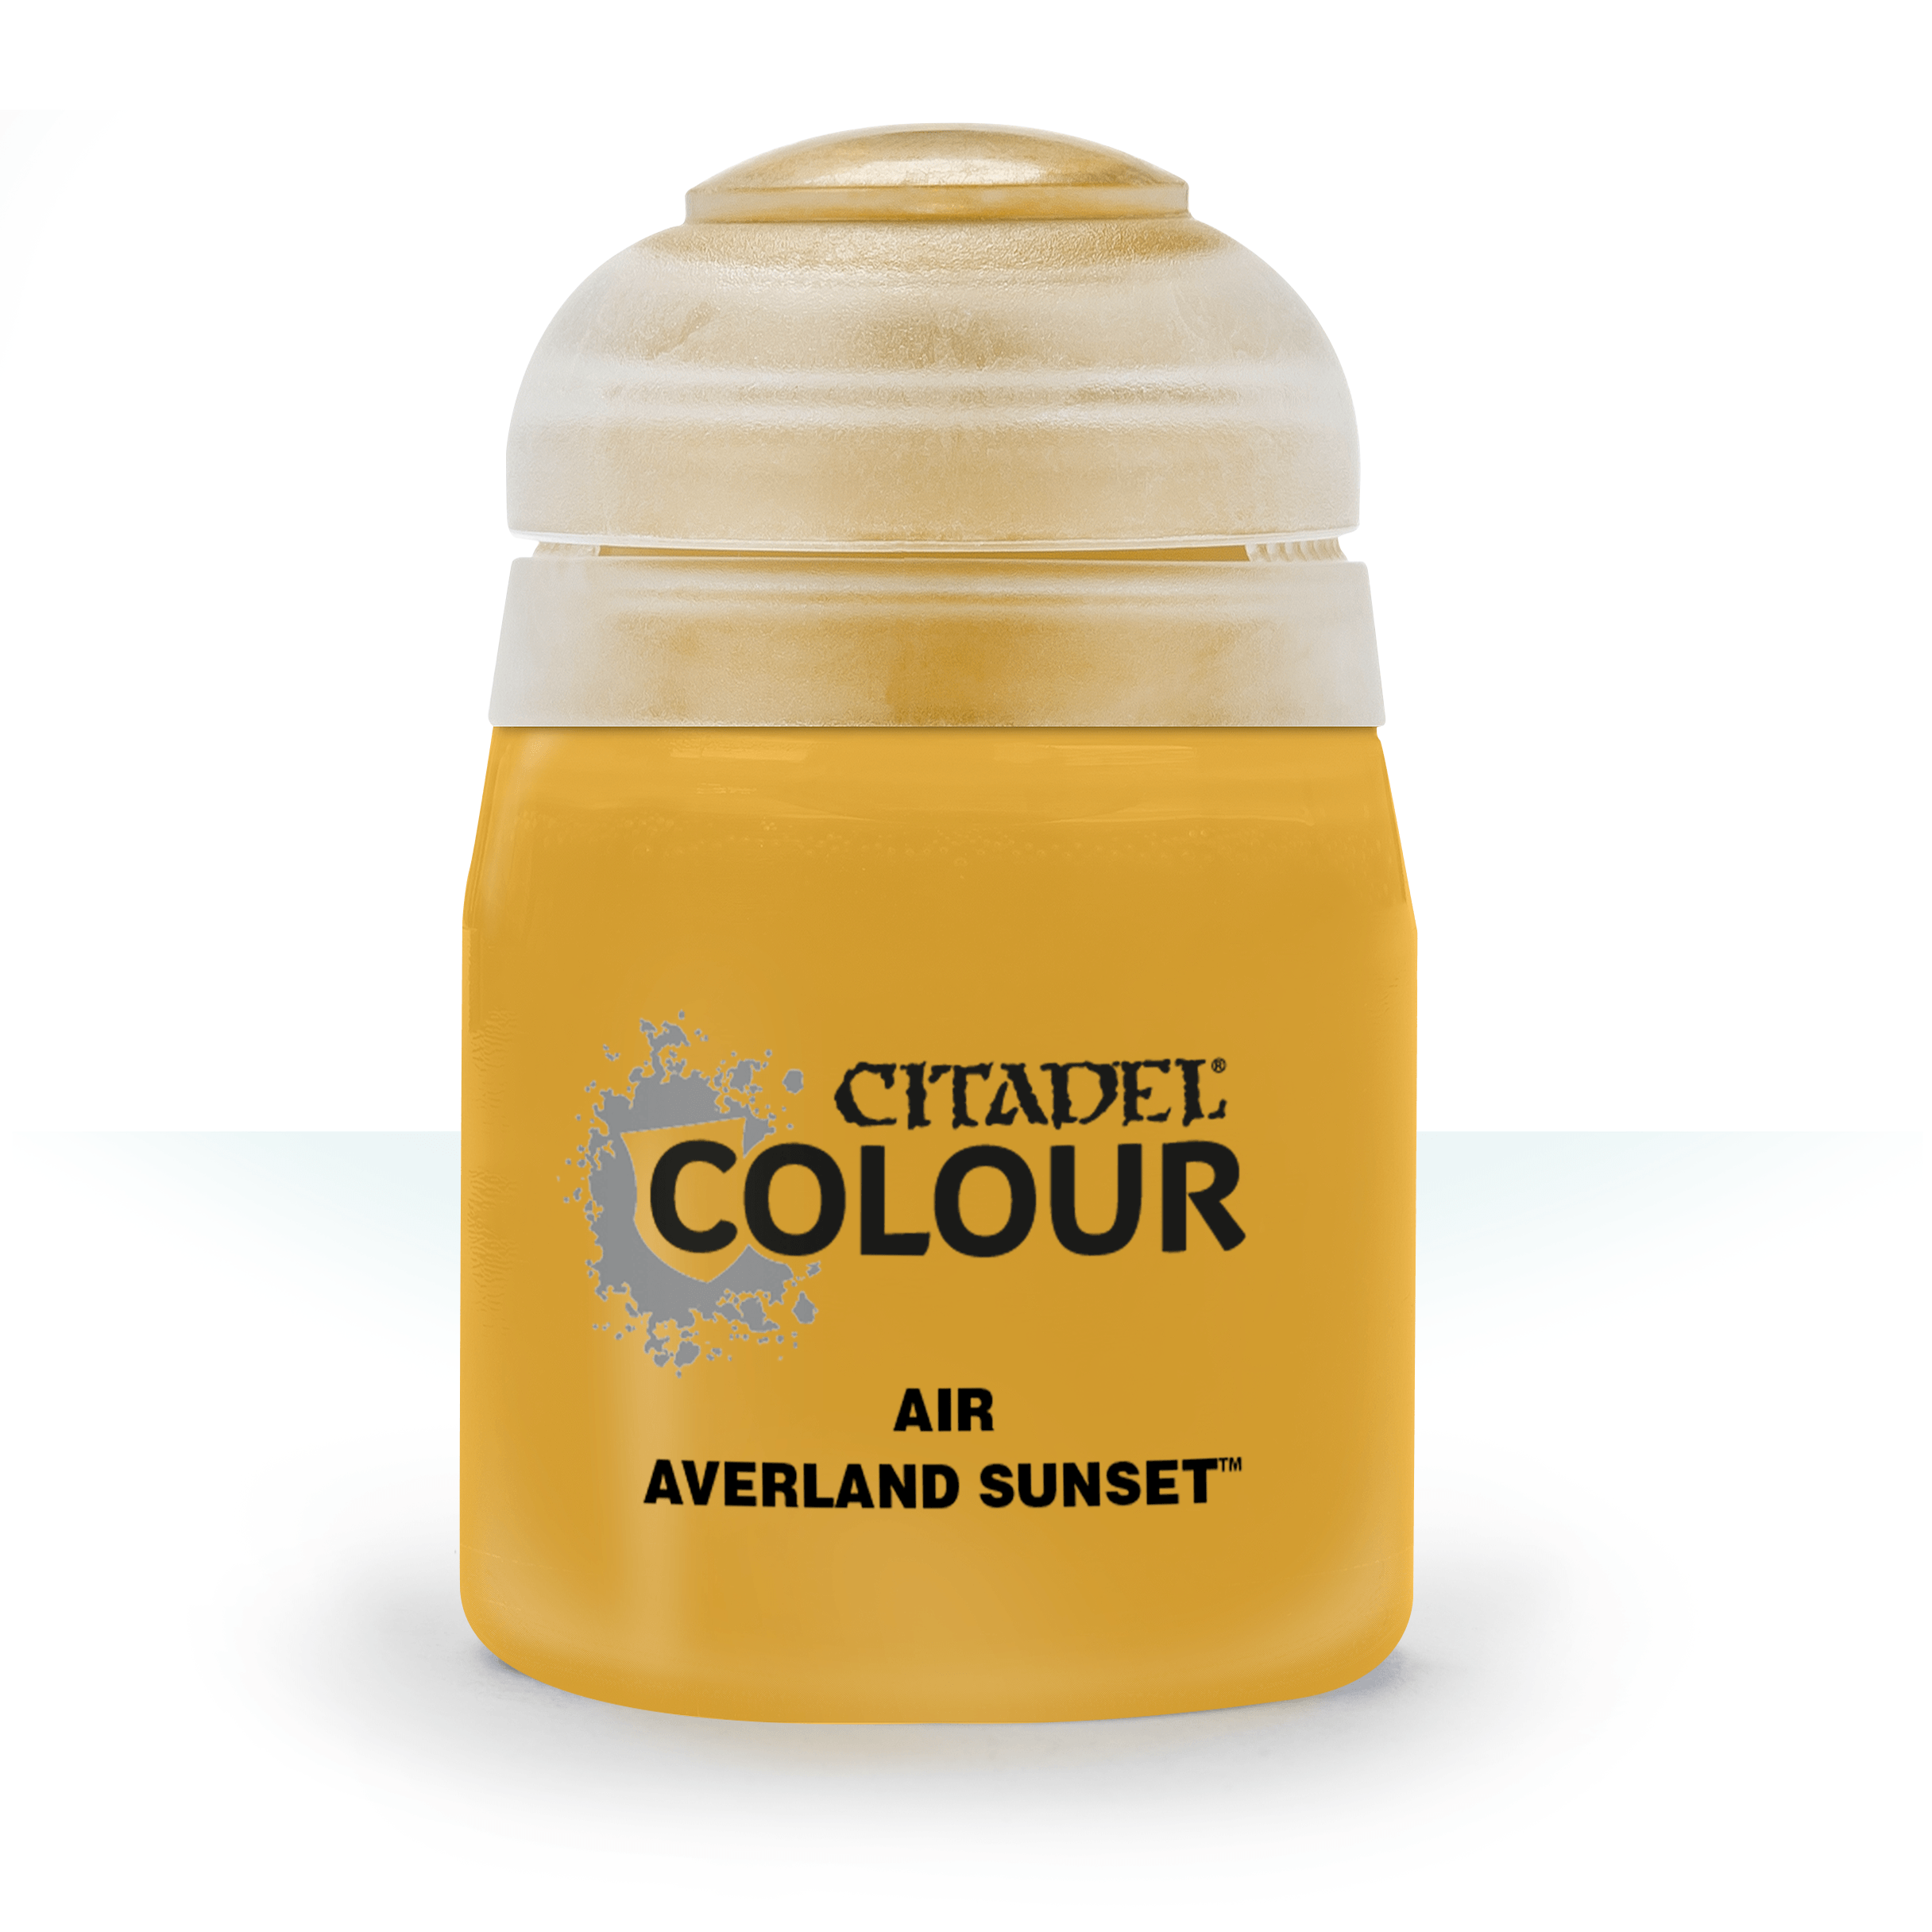 Citadel Airbrush Paints: Averland Sunset Air (24ML)